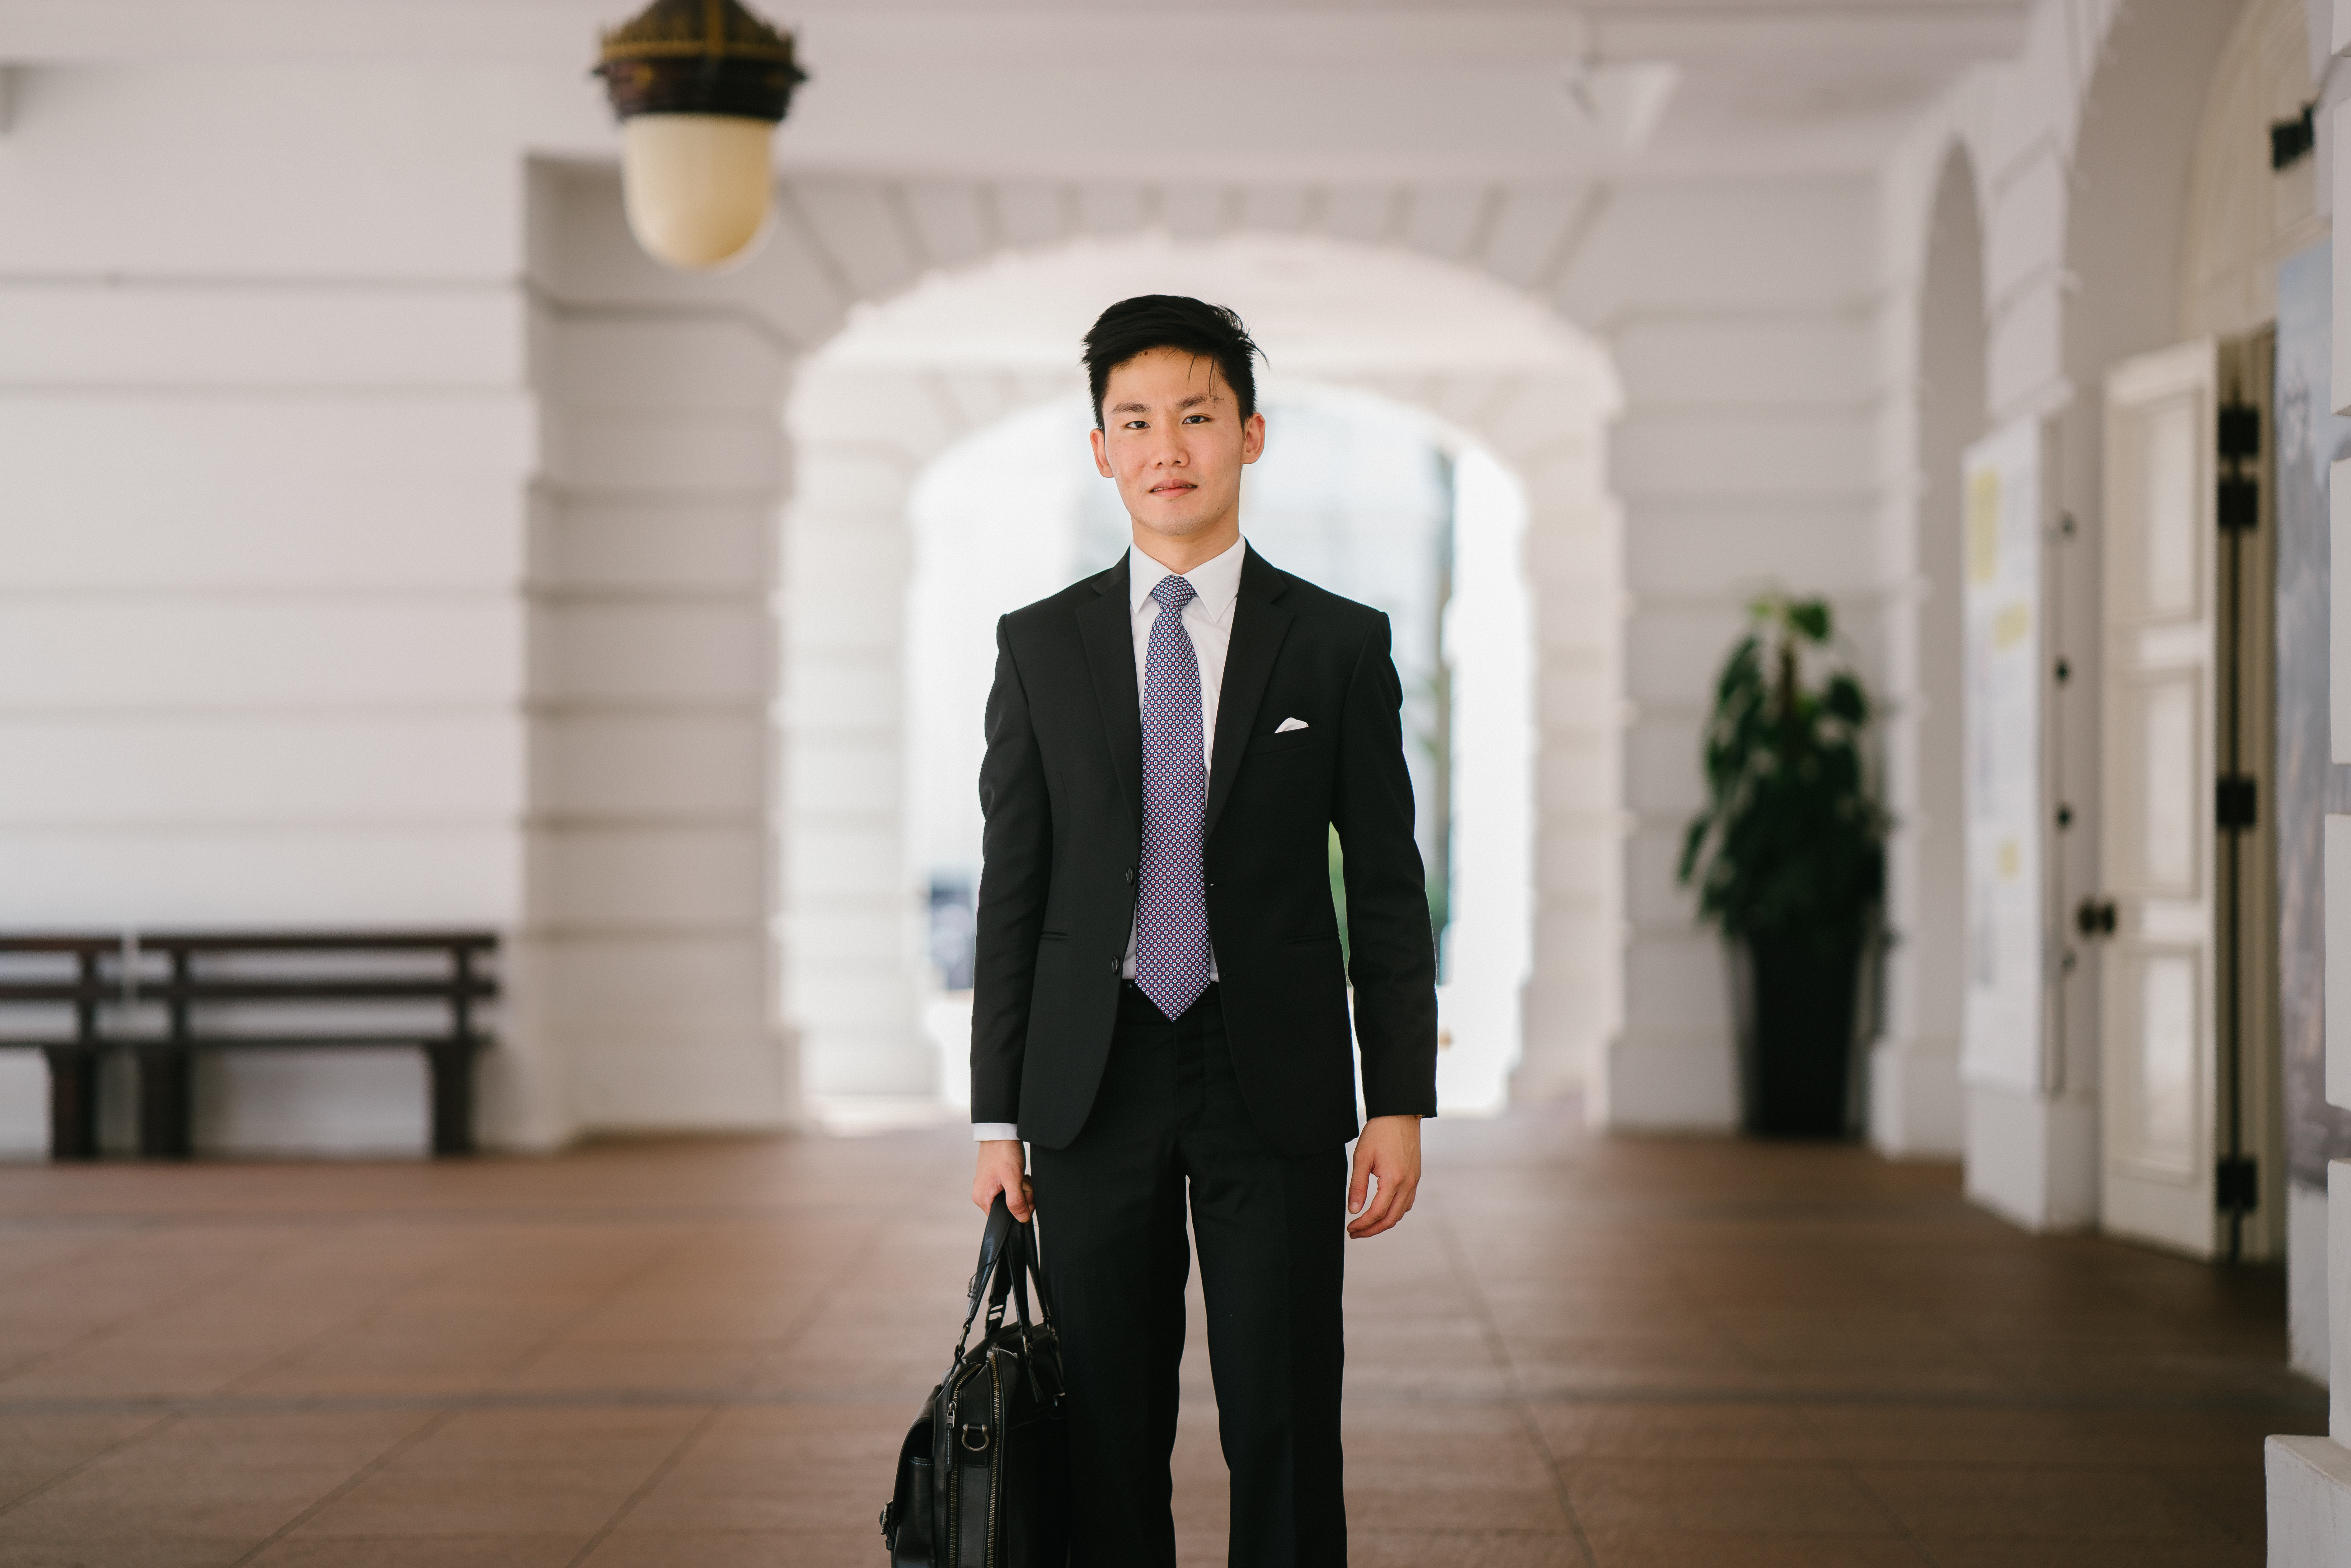 f6f790615a03 Men Wearing Black Suit Jacket and Pants · Free Stock Photo